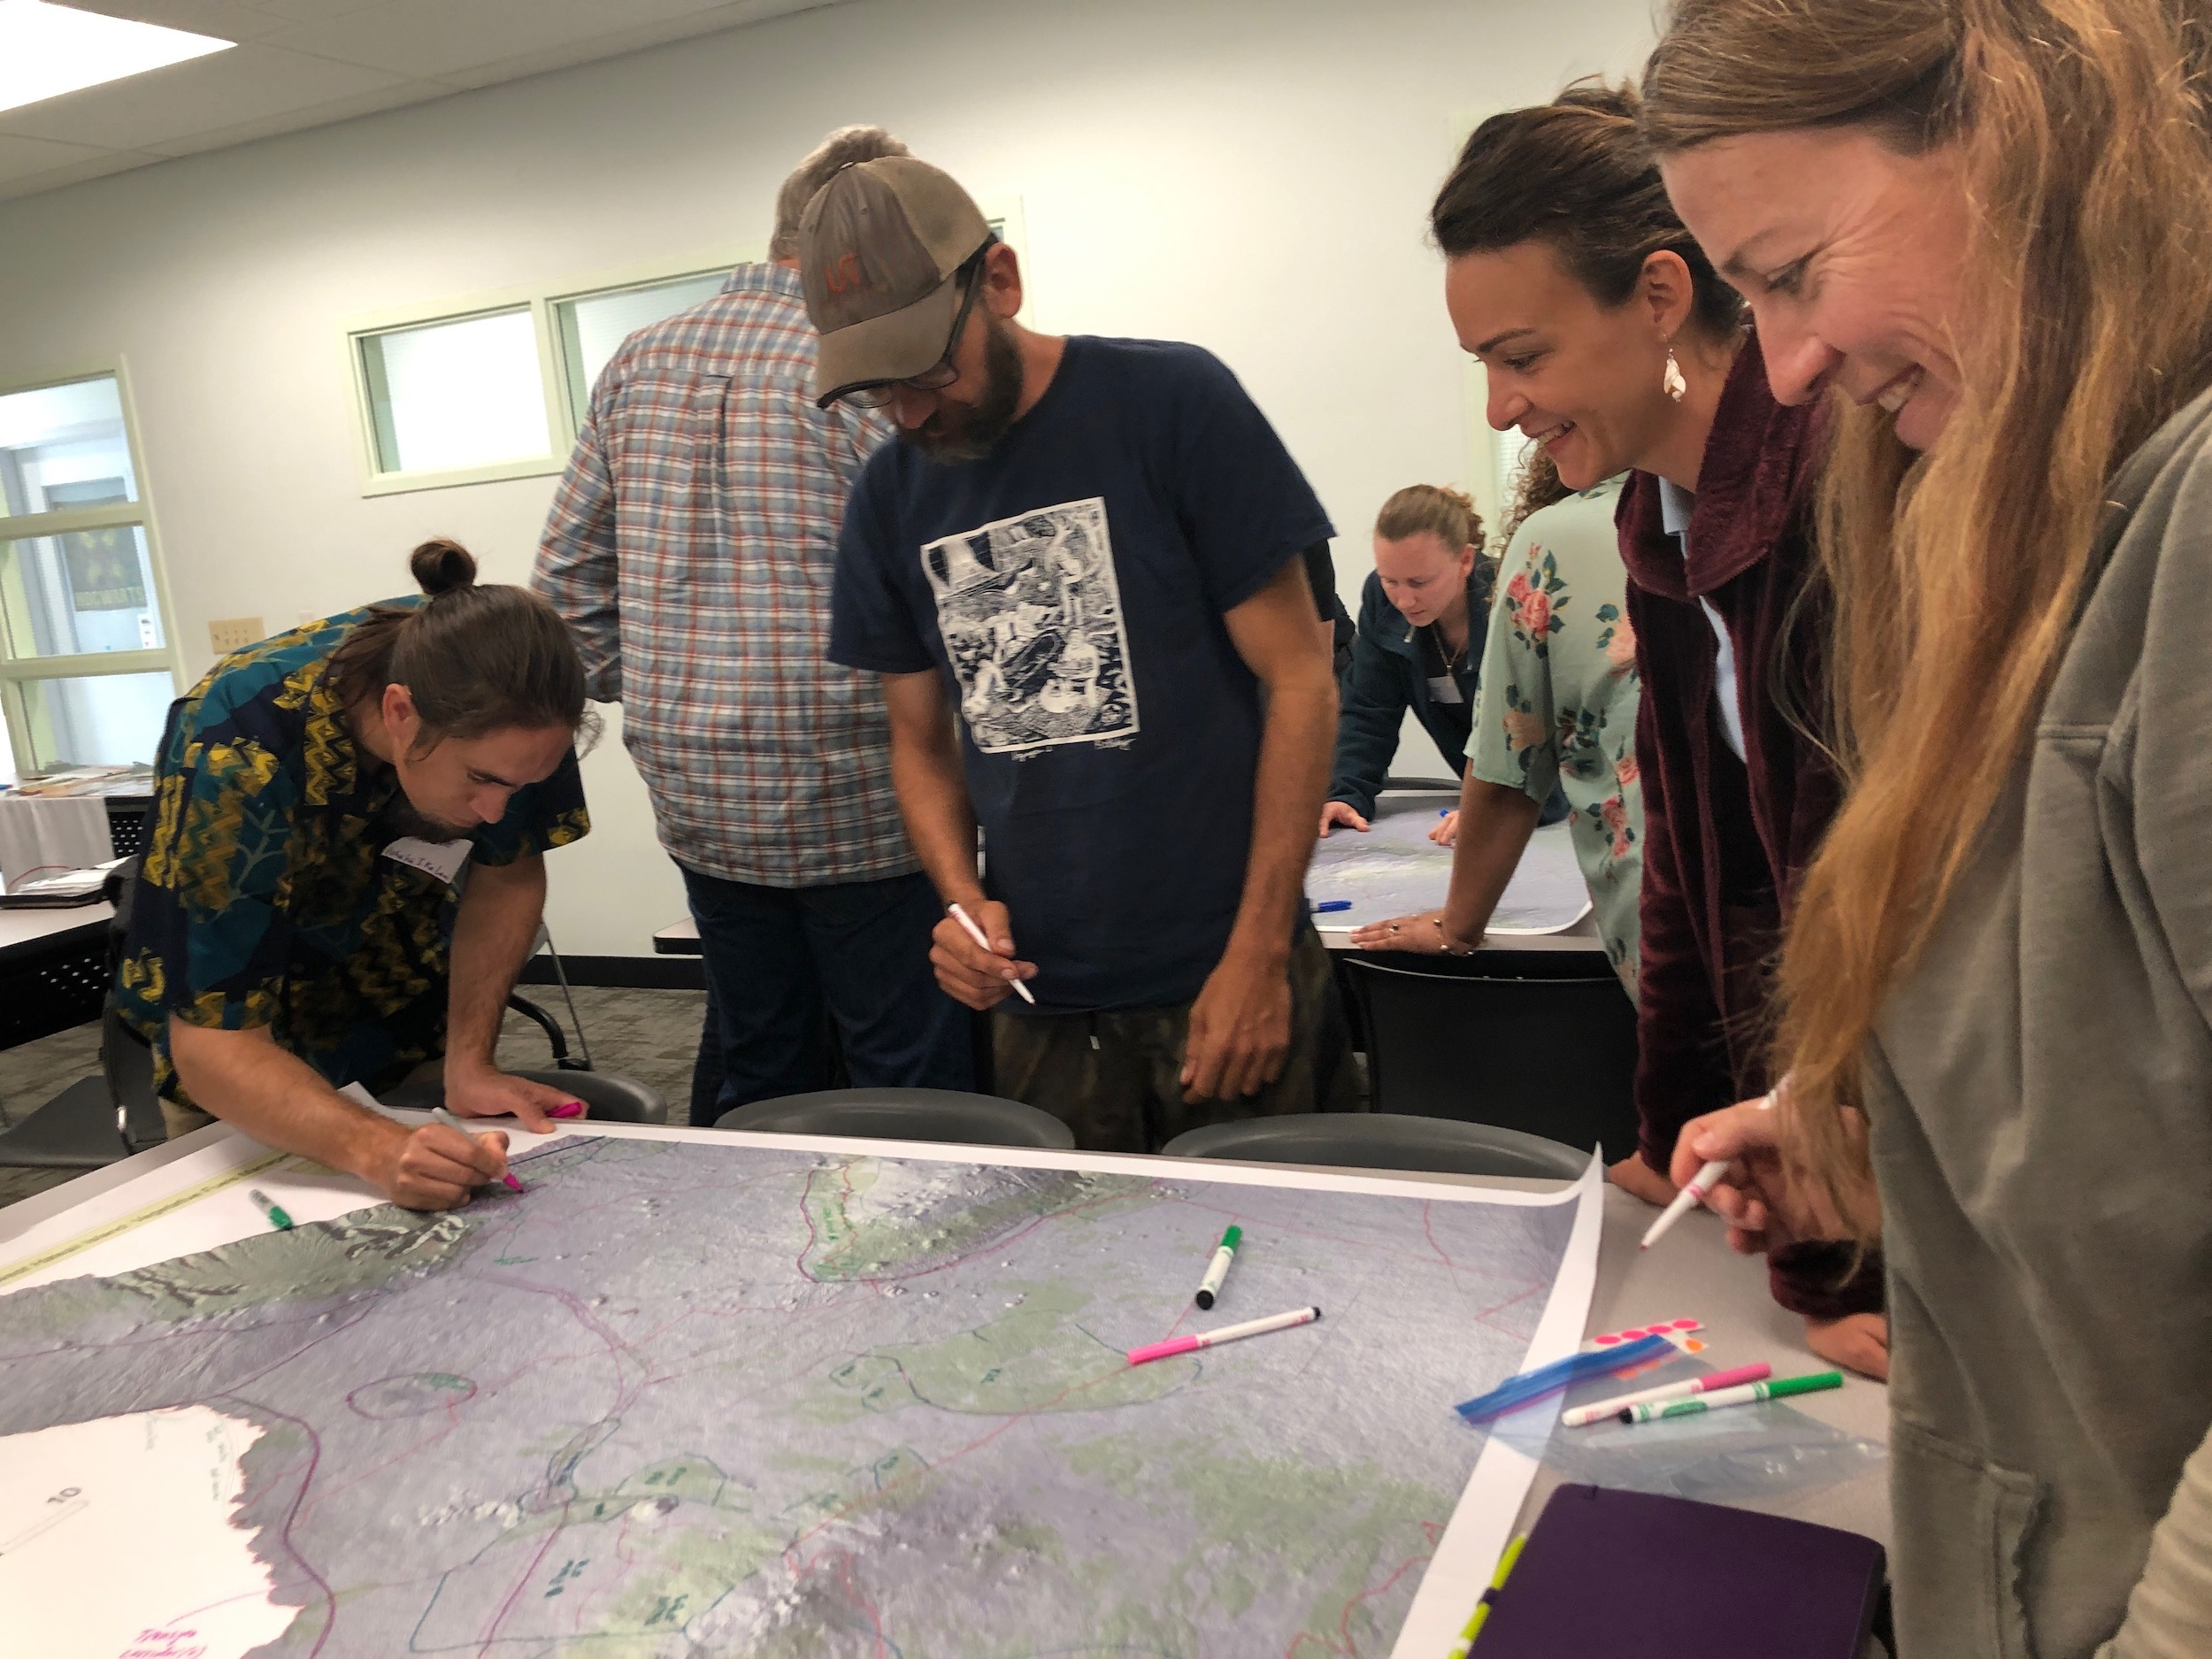 Hawaii Island Hilo Vegetative Fuels Management Collaborative Action Planning Workshop_2_22_2019_9.jpg